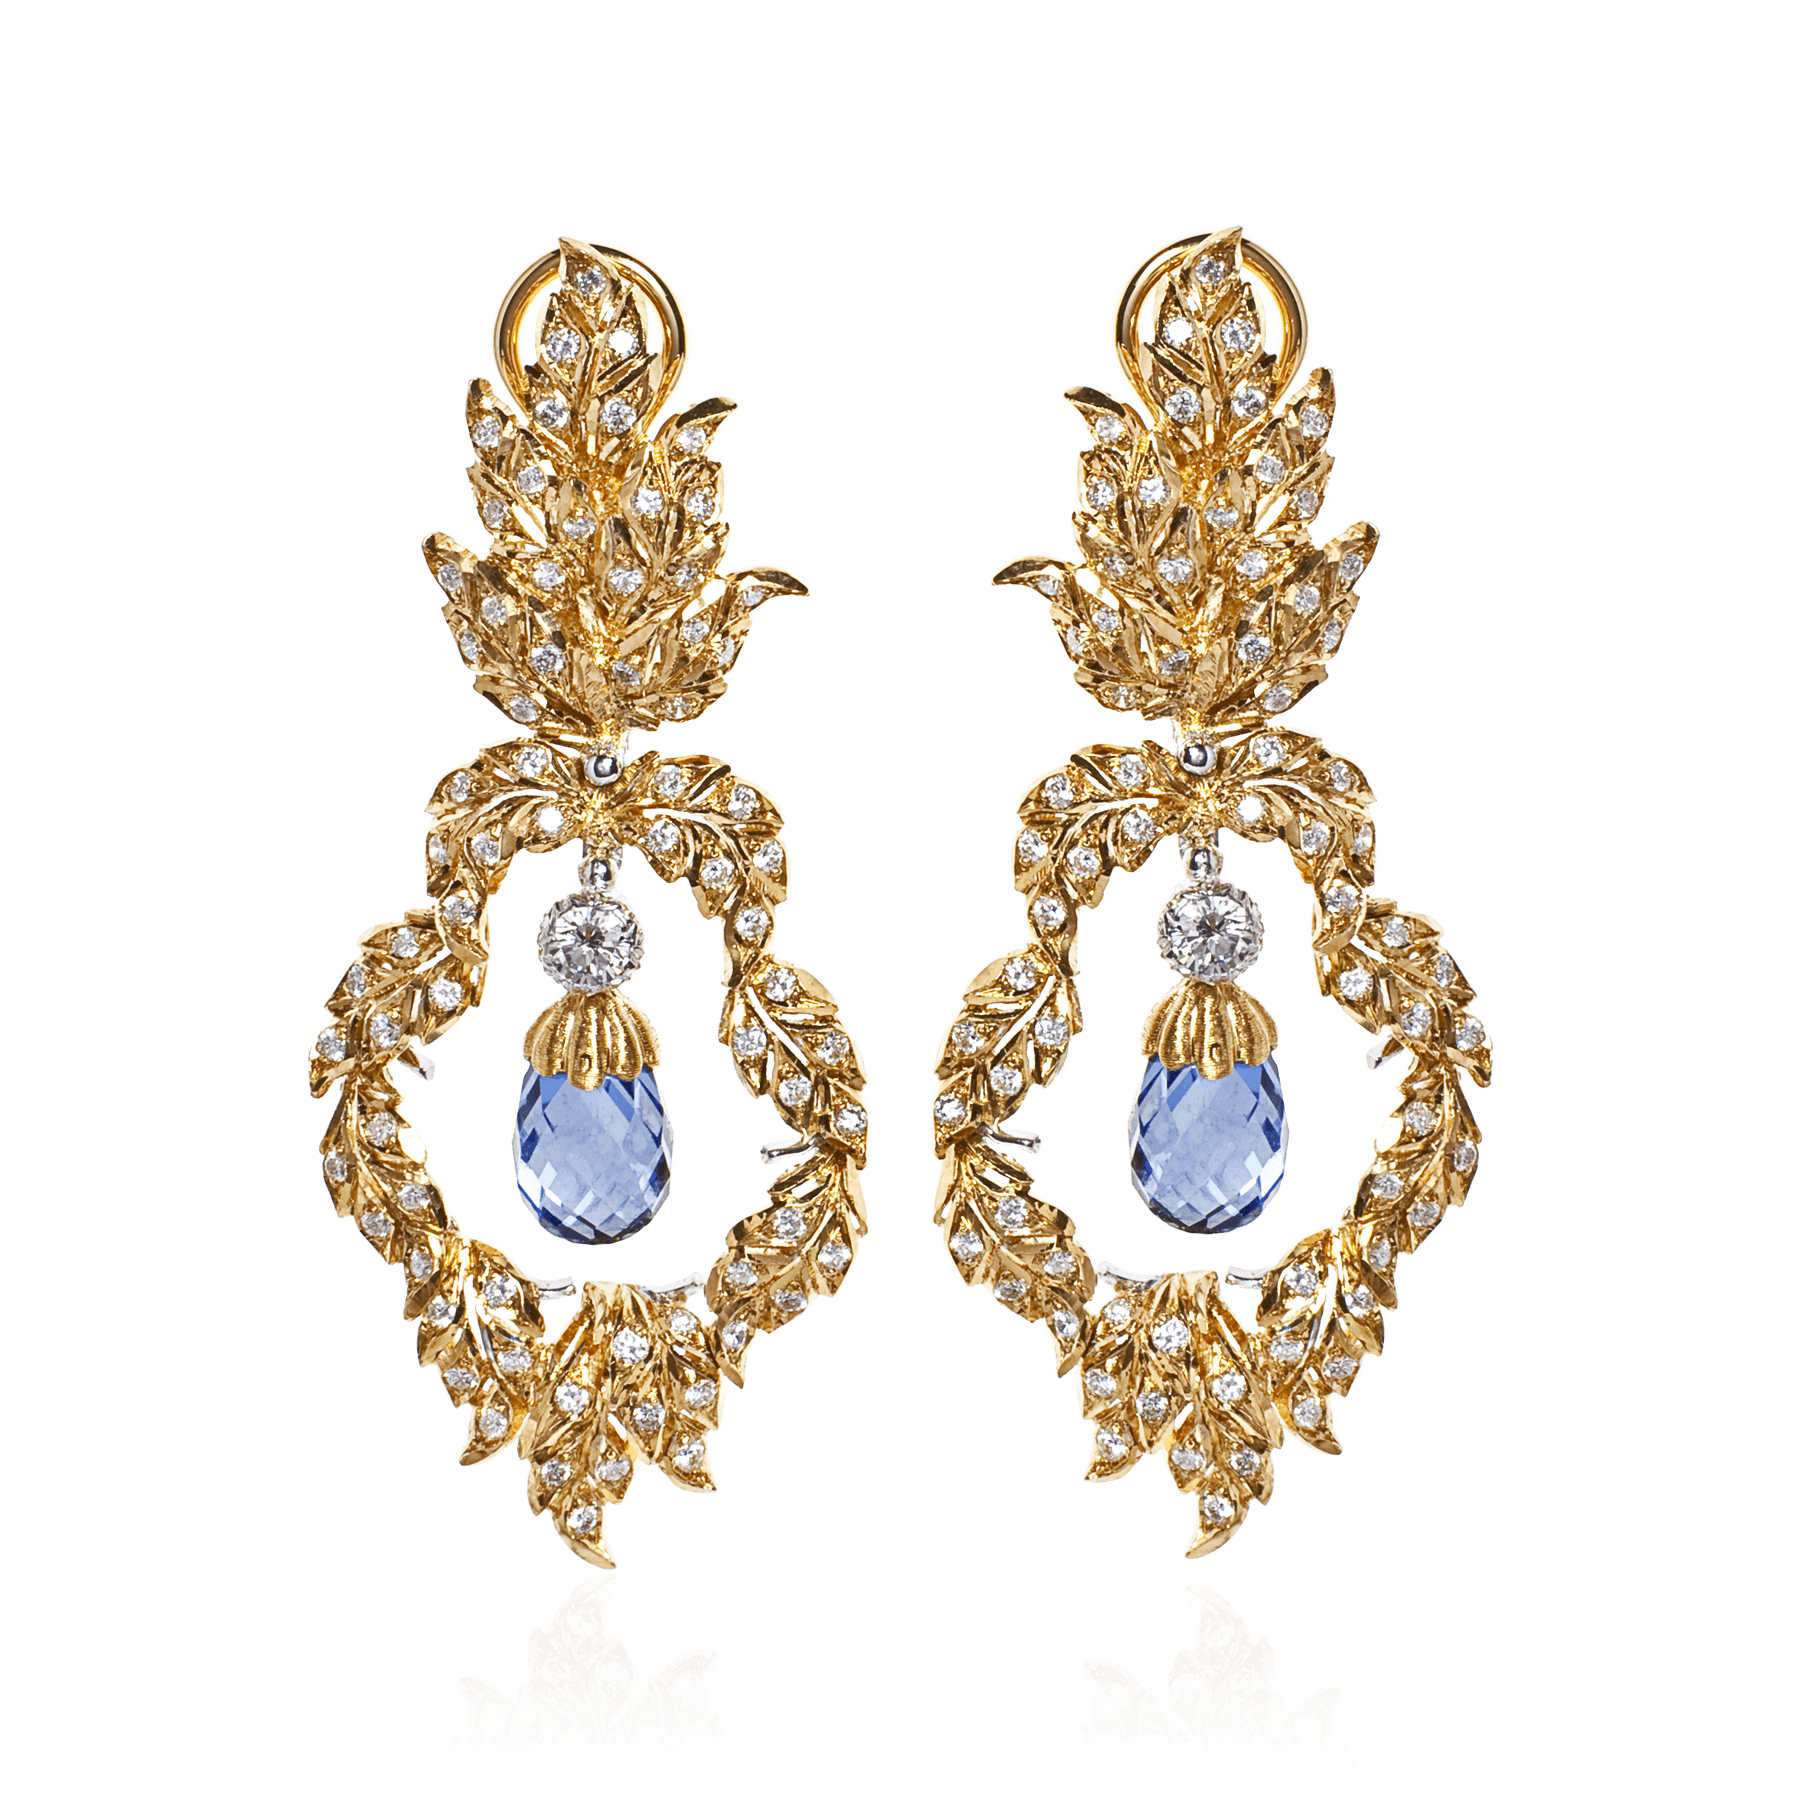 Buccellati gold diamond and sapphire earrings with jewel in center